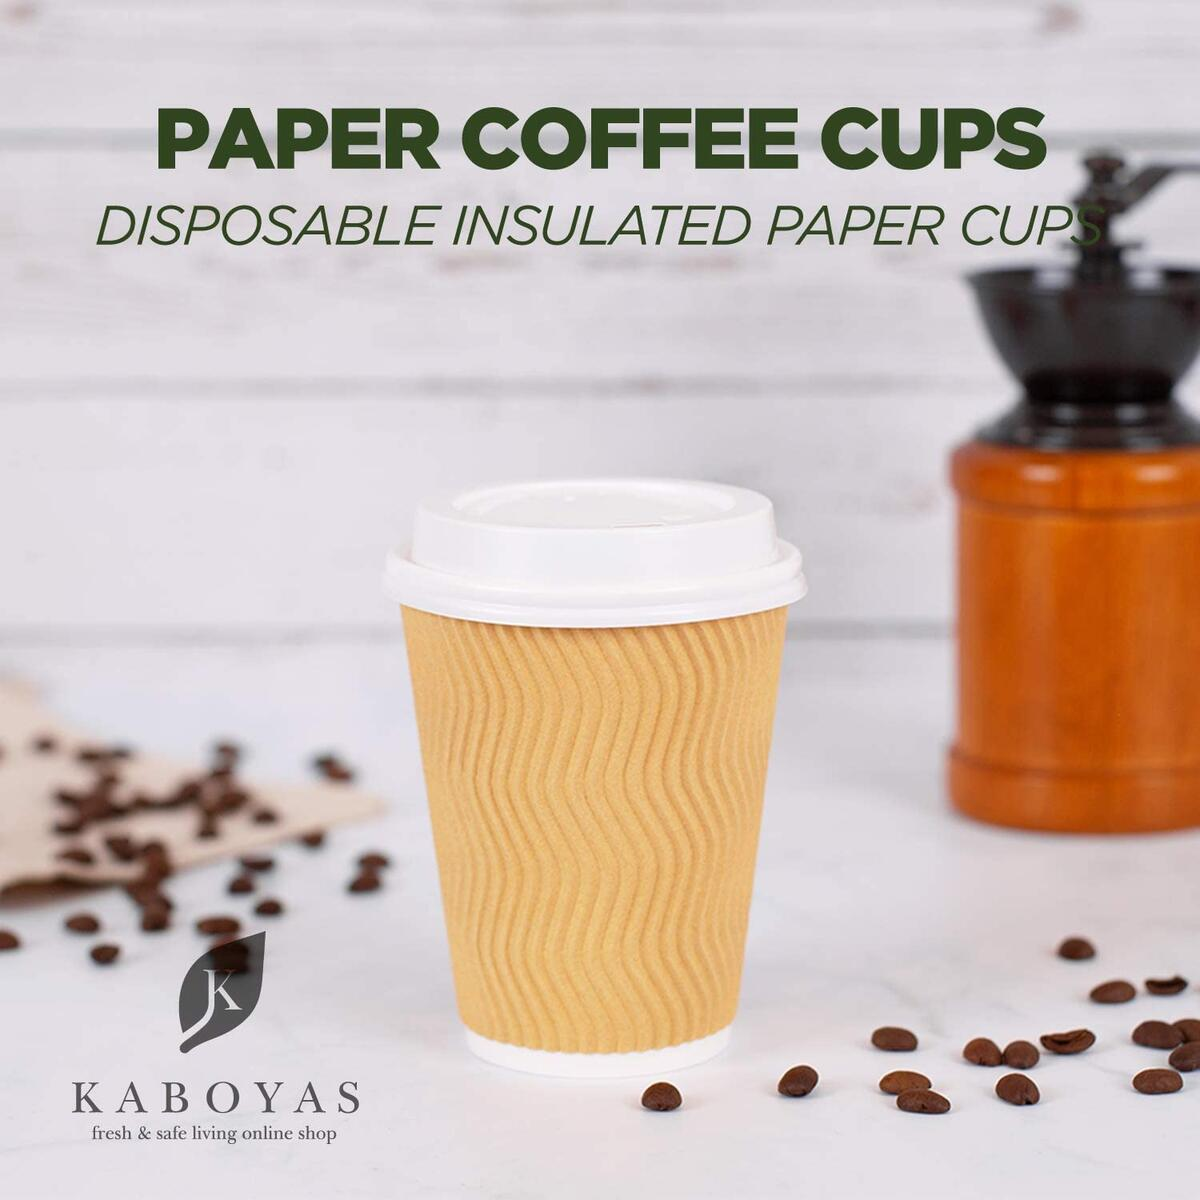 KABOYAS Disposable Paper Coffee Cups with lids (Brown, 12oz, 100 pack)